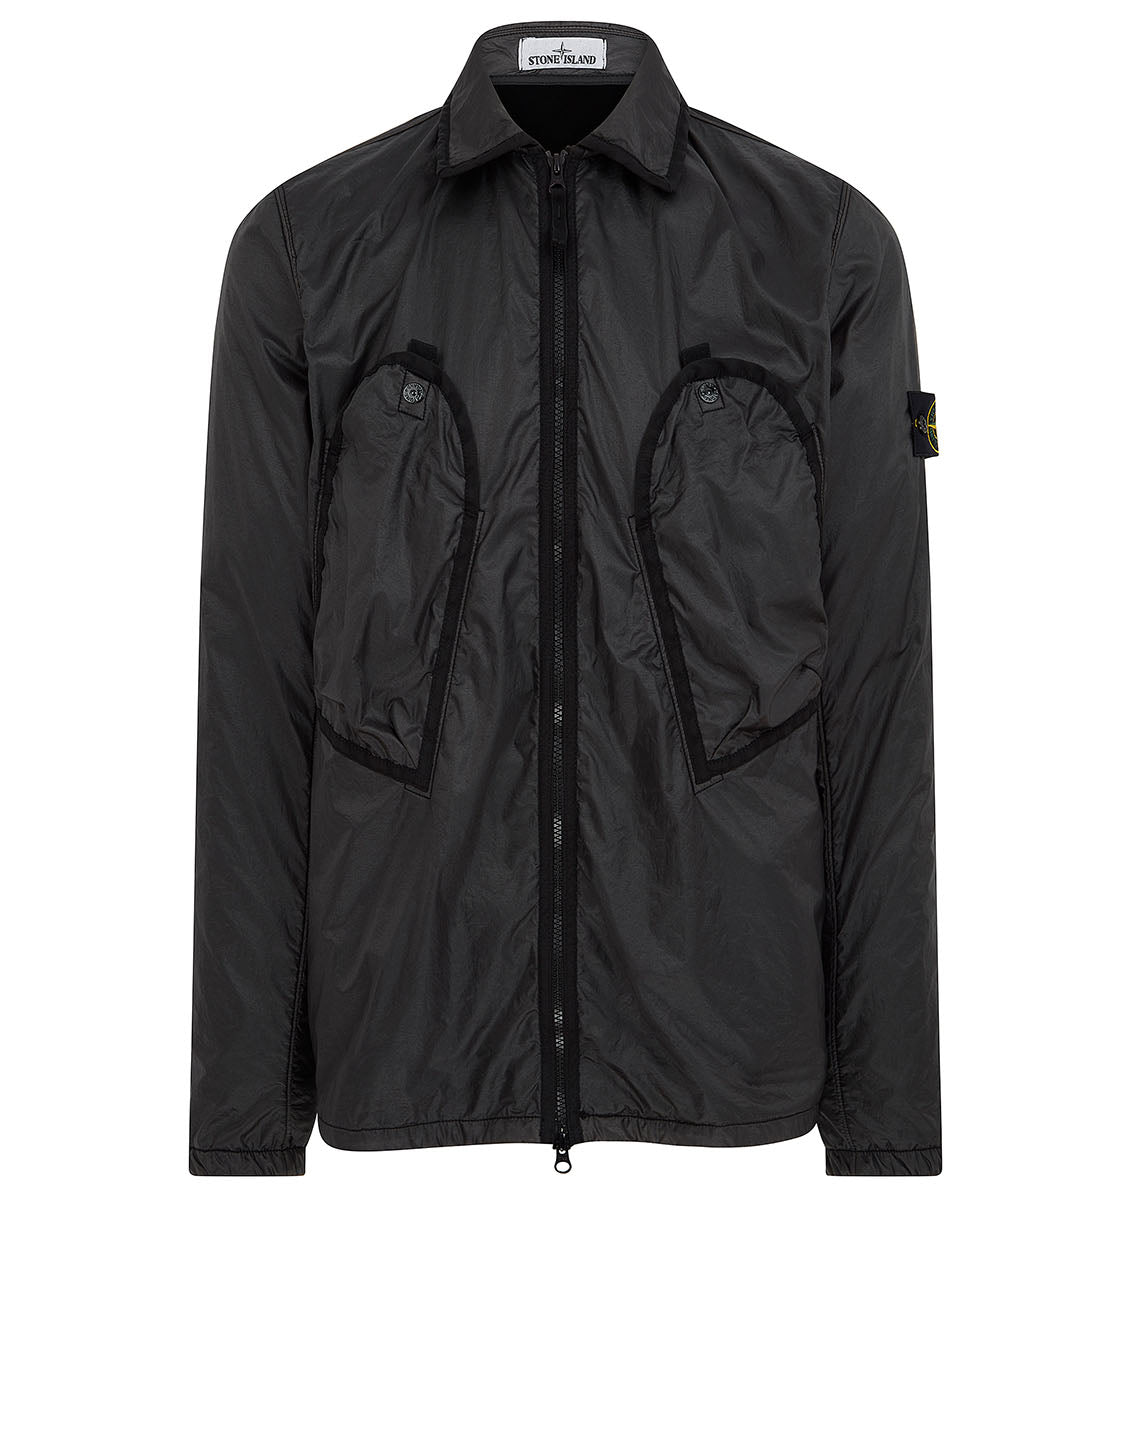 11435 Lamy Flock Jacket in Black